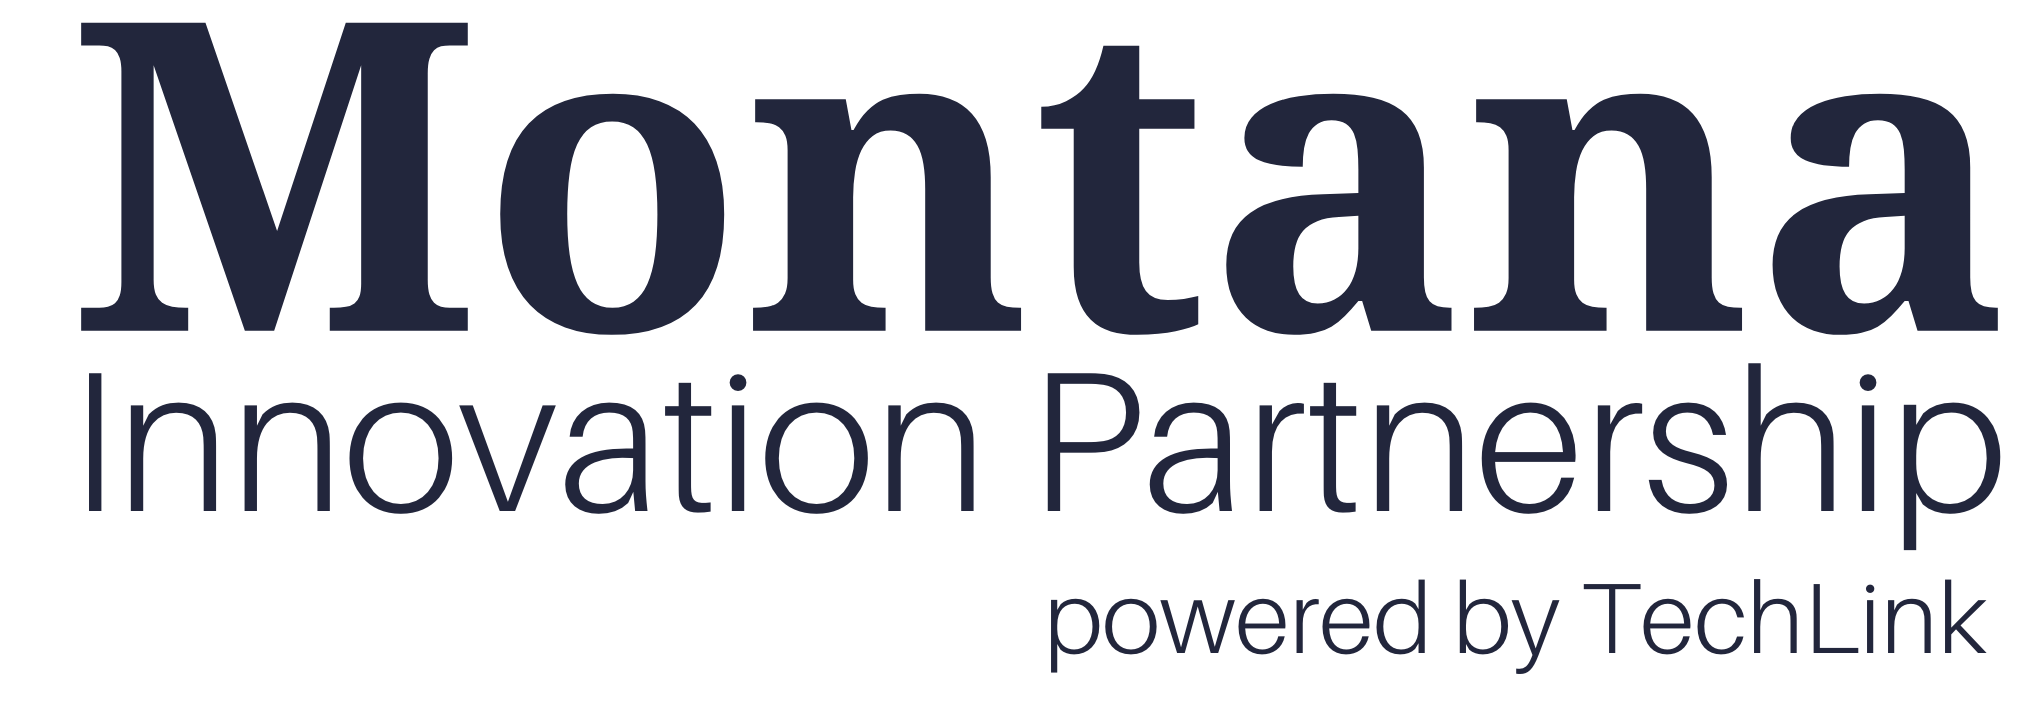 Montana Innovation Partnership